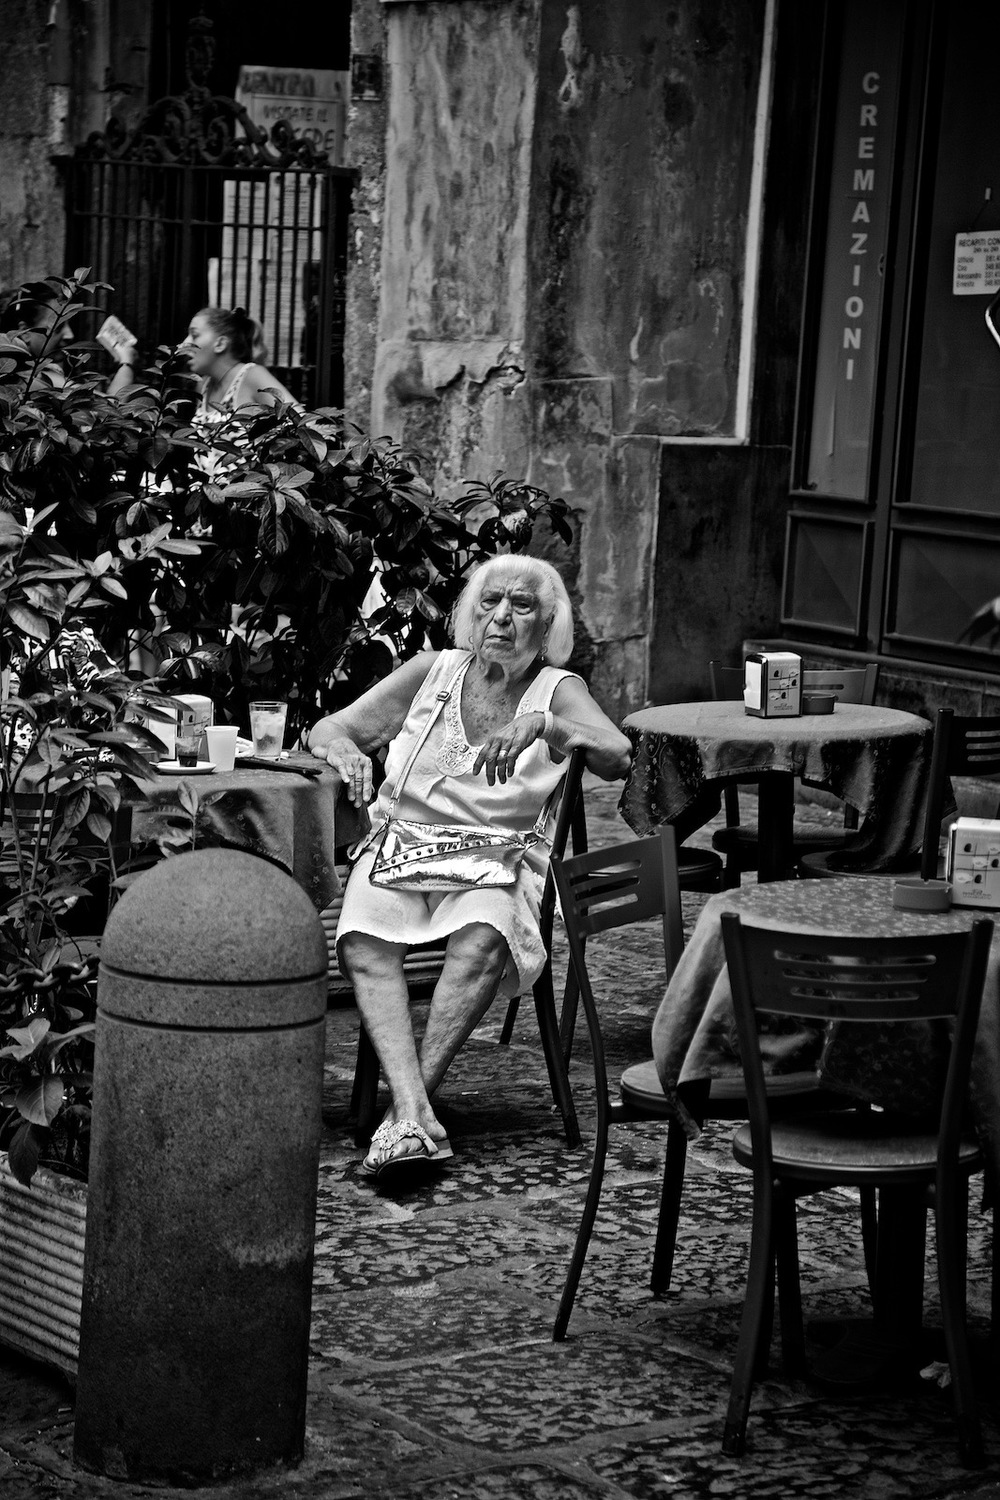 faces-of-napoli-denis-bosnic-photography-naples-bw-spaccanapoli-summer-22.jpg